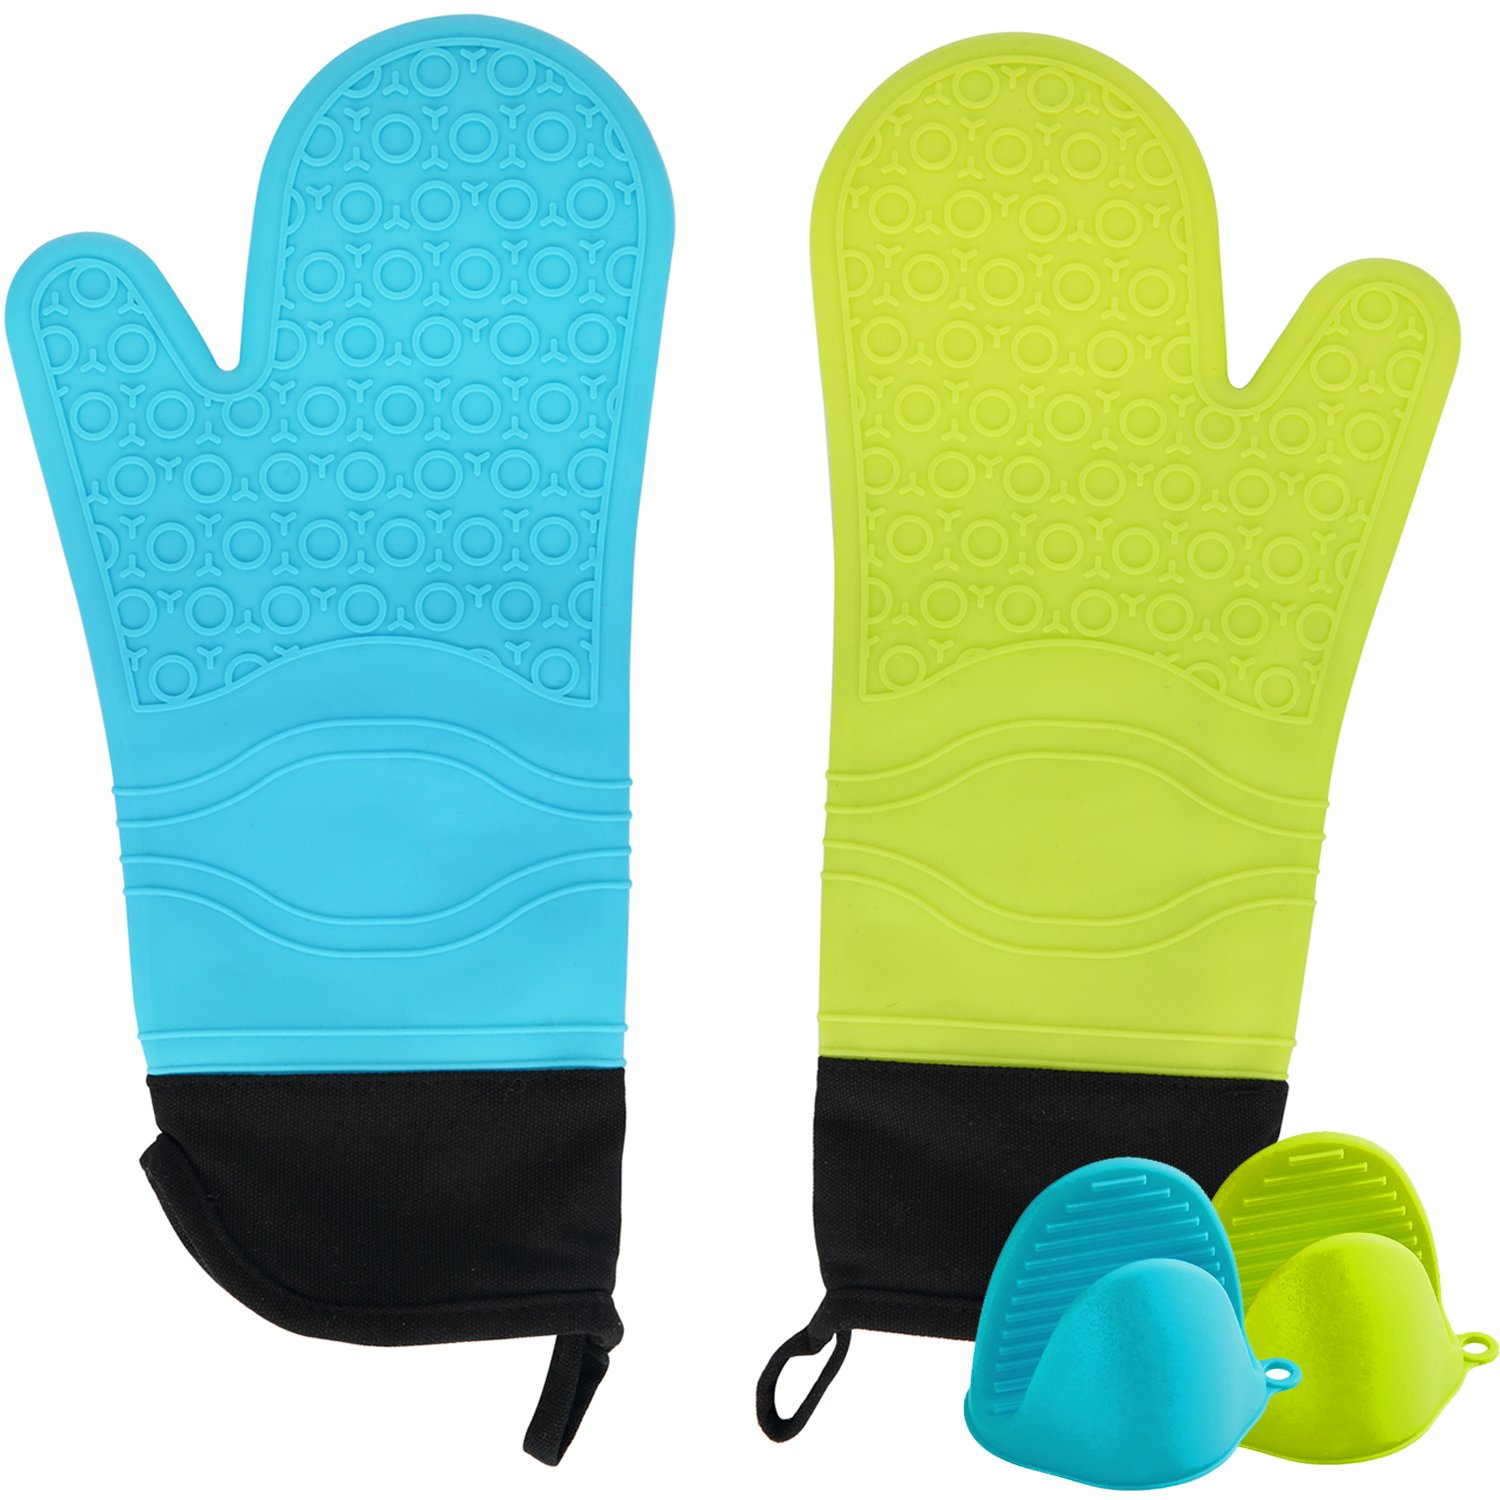 STARUBY Professional Oven Mitts,Silicone Microwave Oven Mitts Heat Resistant Kitchen Mitts Set Mix Green and Blue, Quilted Liner, for Women&Man Gift with Pinch Grips